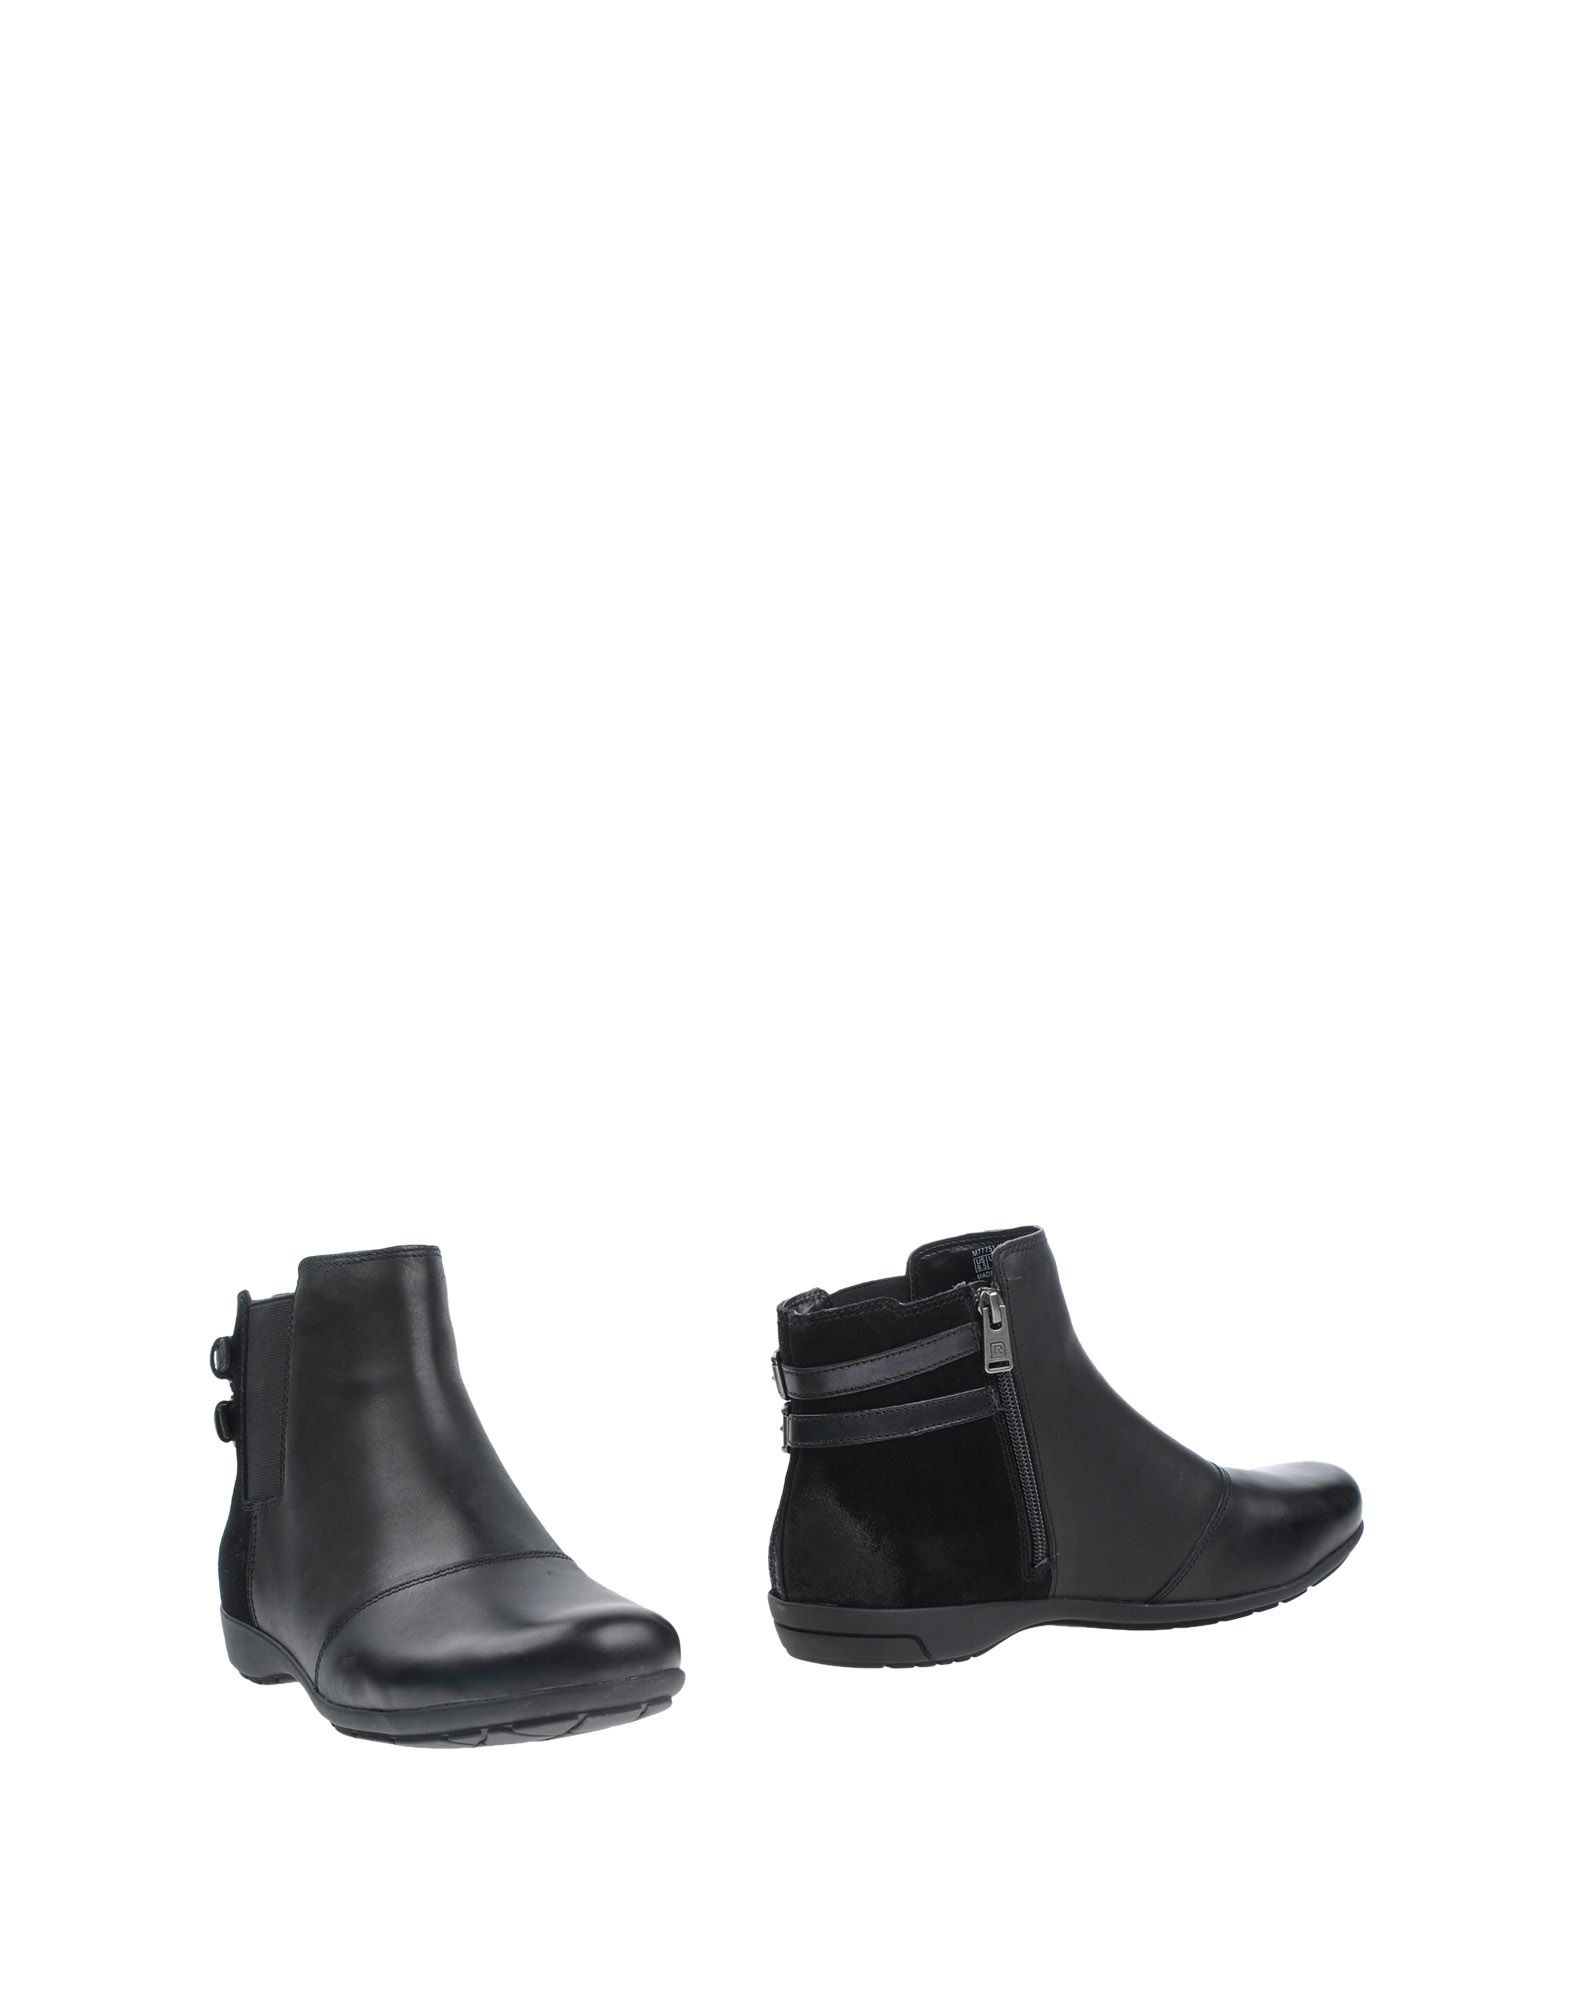 Rockport Ankle Boot - Women Rockport Ankle United Boots online on  United Ankle Kingdom - 11331266LH a44317